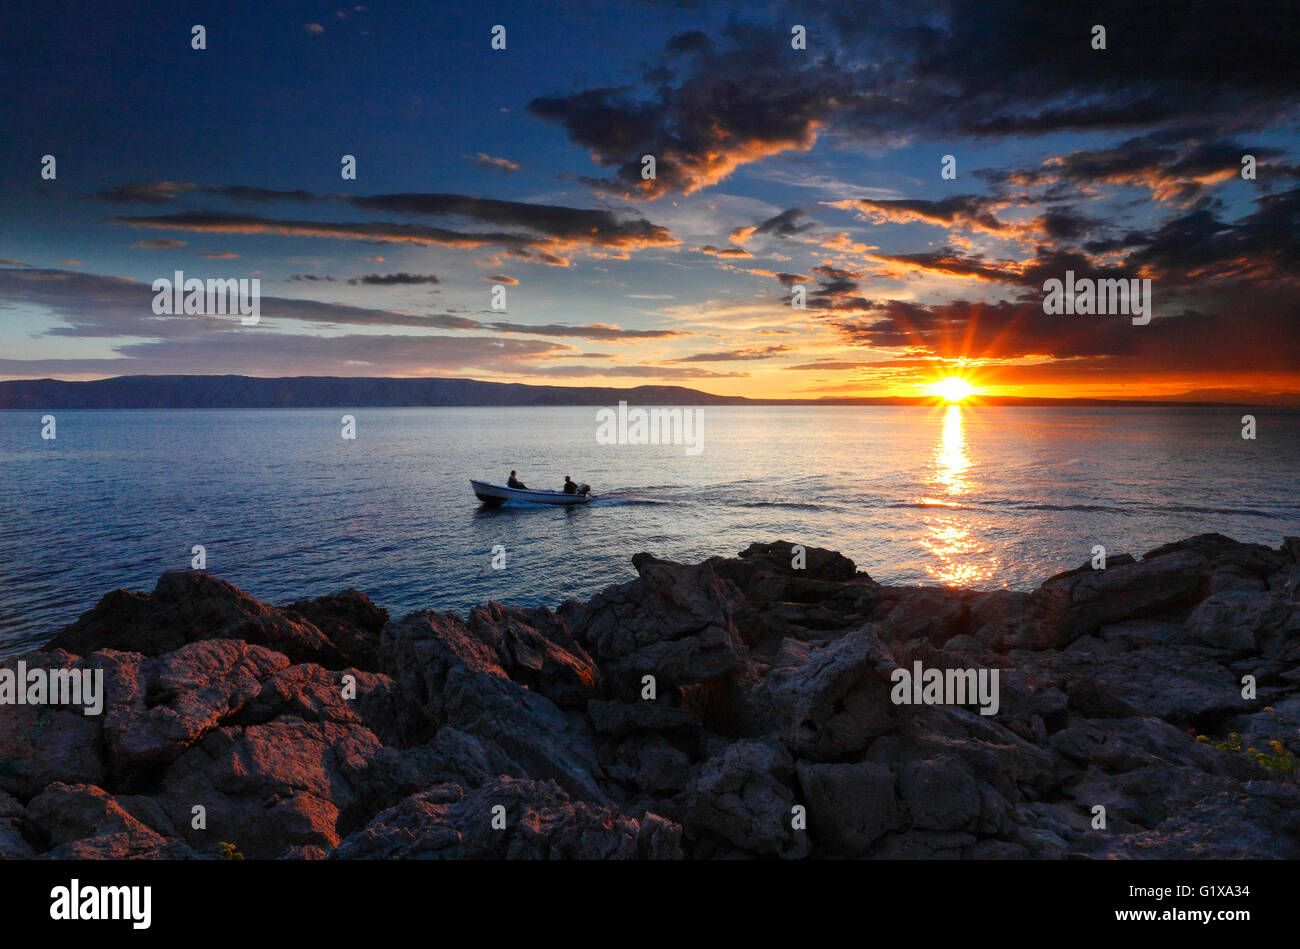 Dramatic sunset landscape at sea. - Stock Image